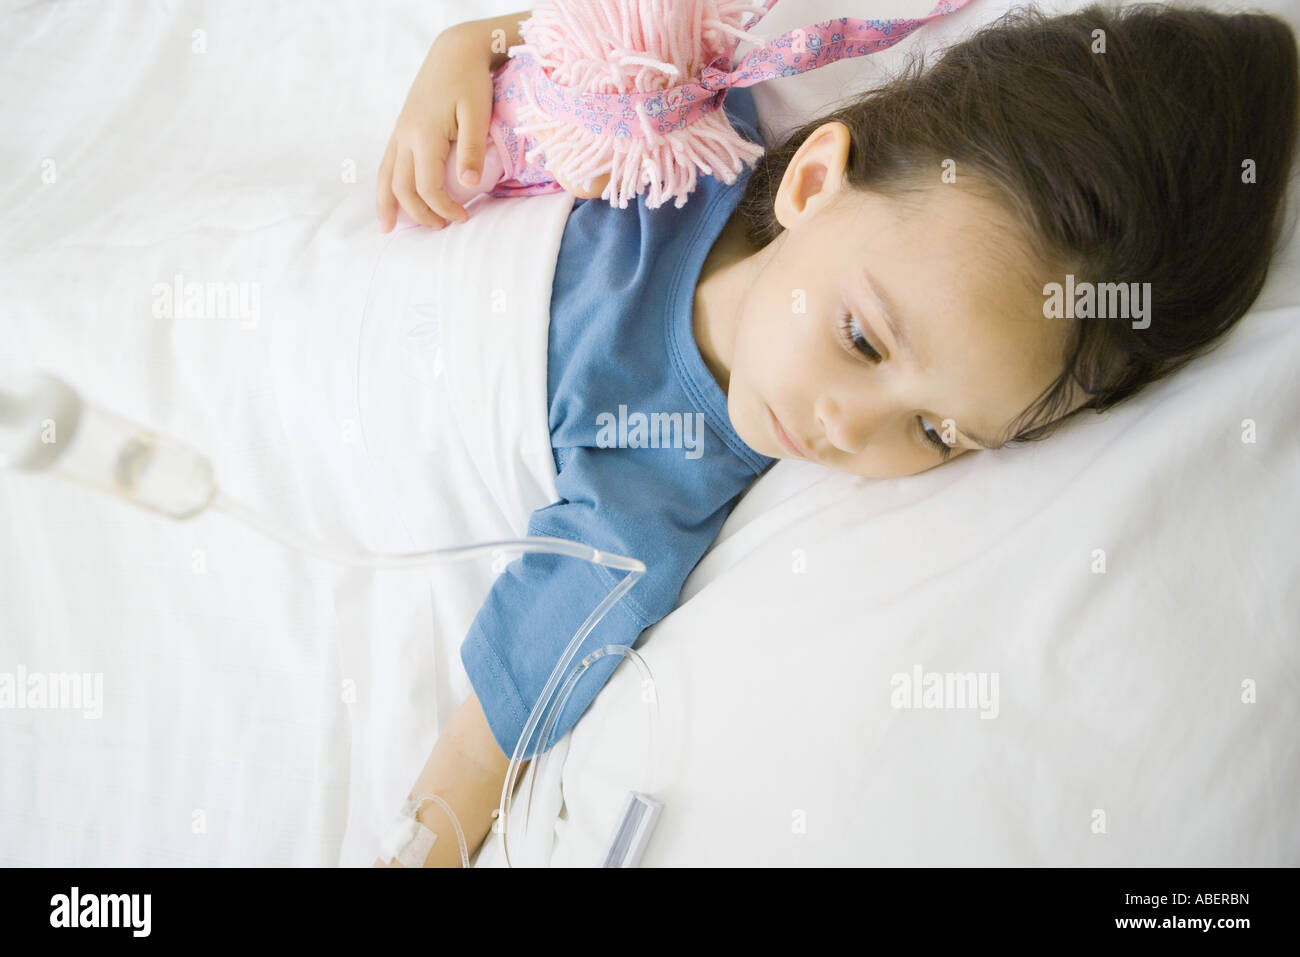 Girl lying in hospital bed - Stock Image